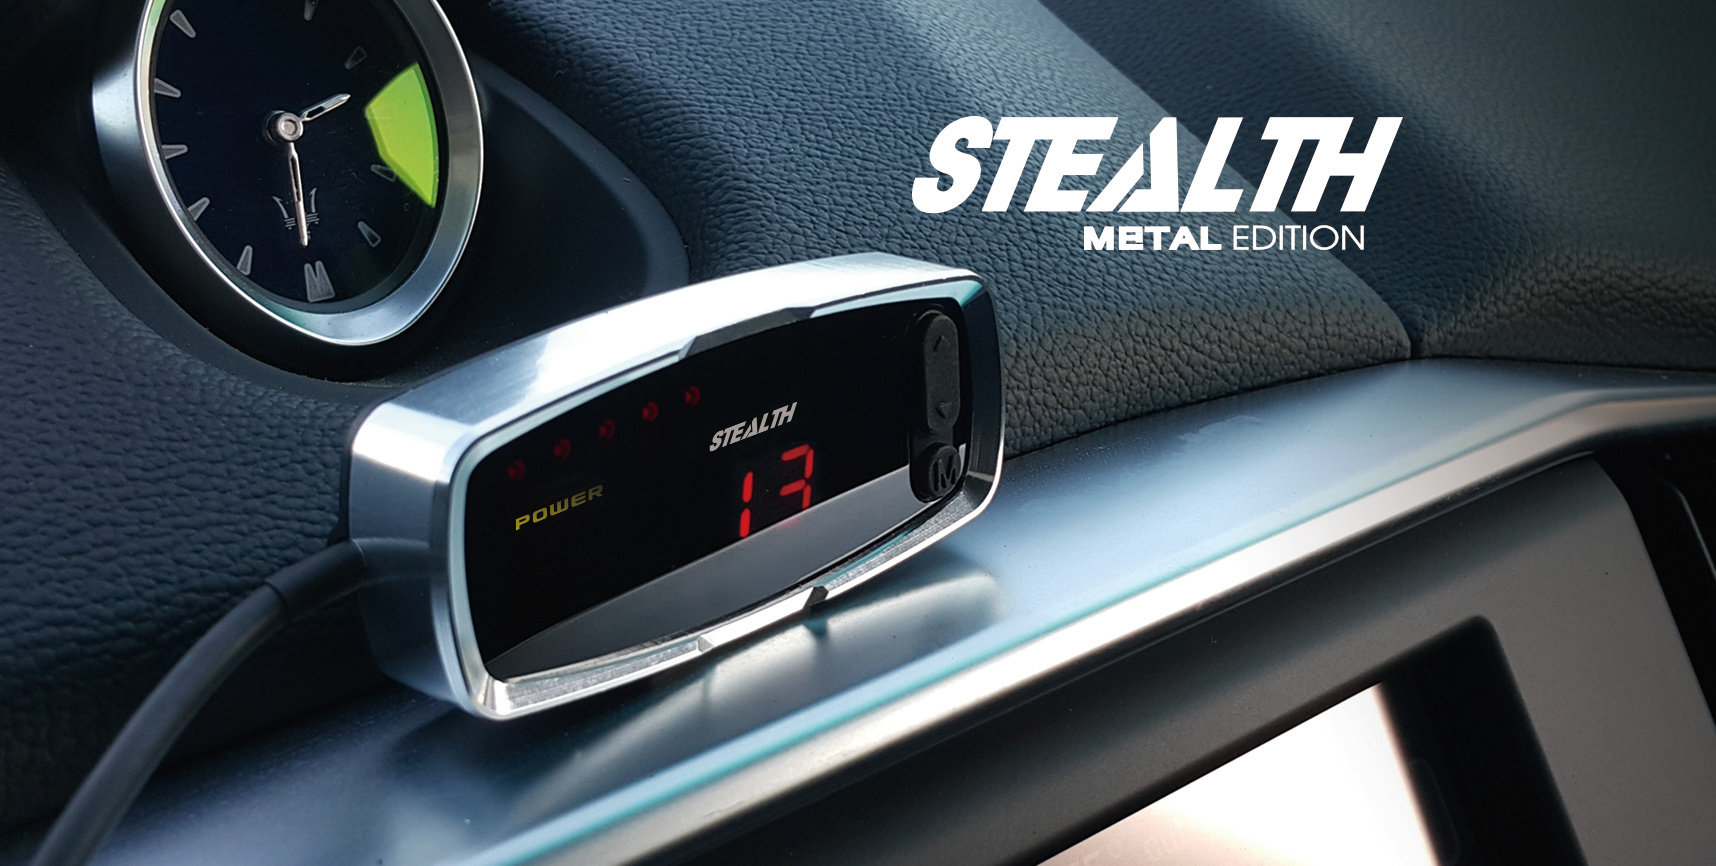 Stealth Controller VE VF V6 Holden Commodore SIDI LFX 3 0L LF1 LFW V6 Chip  Tune